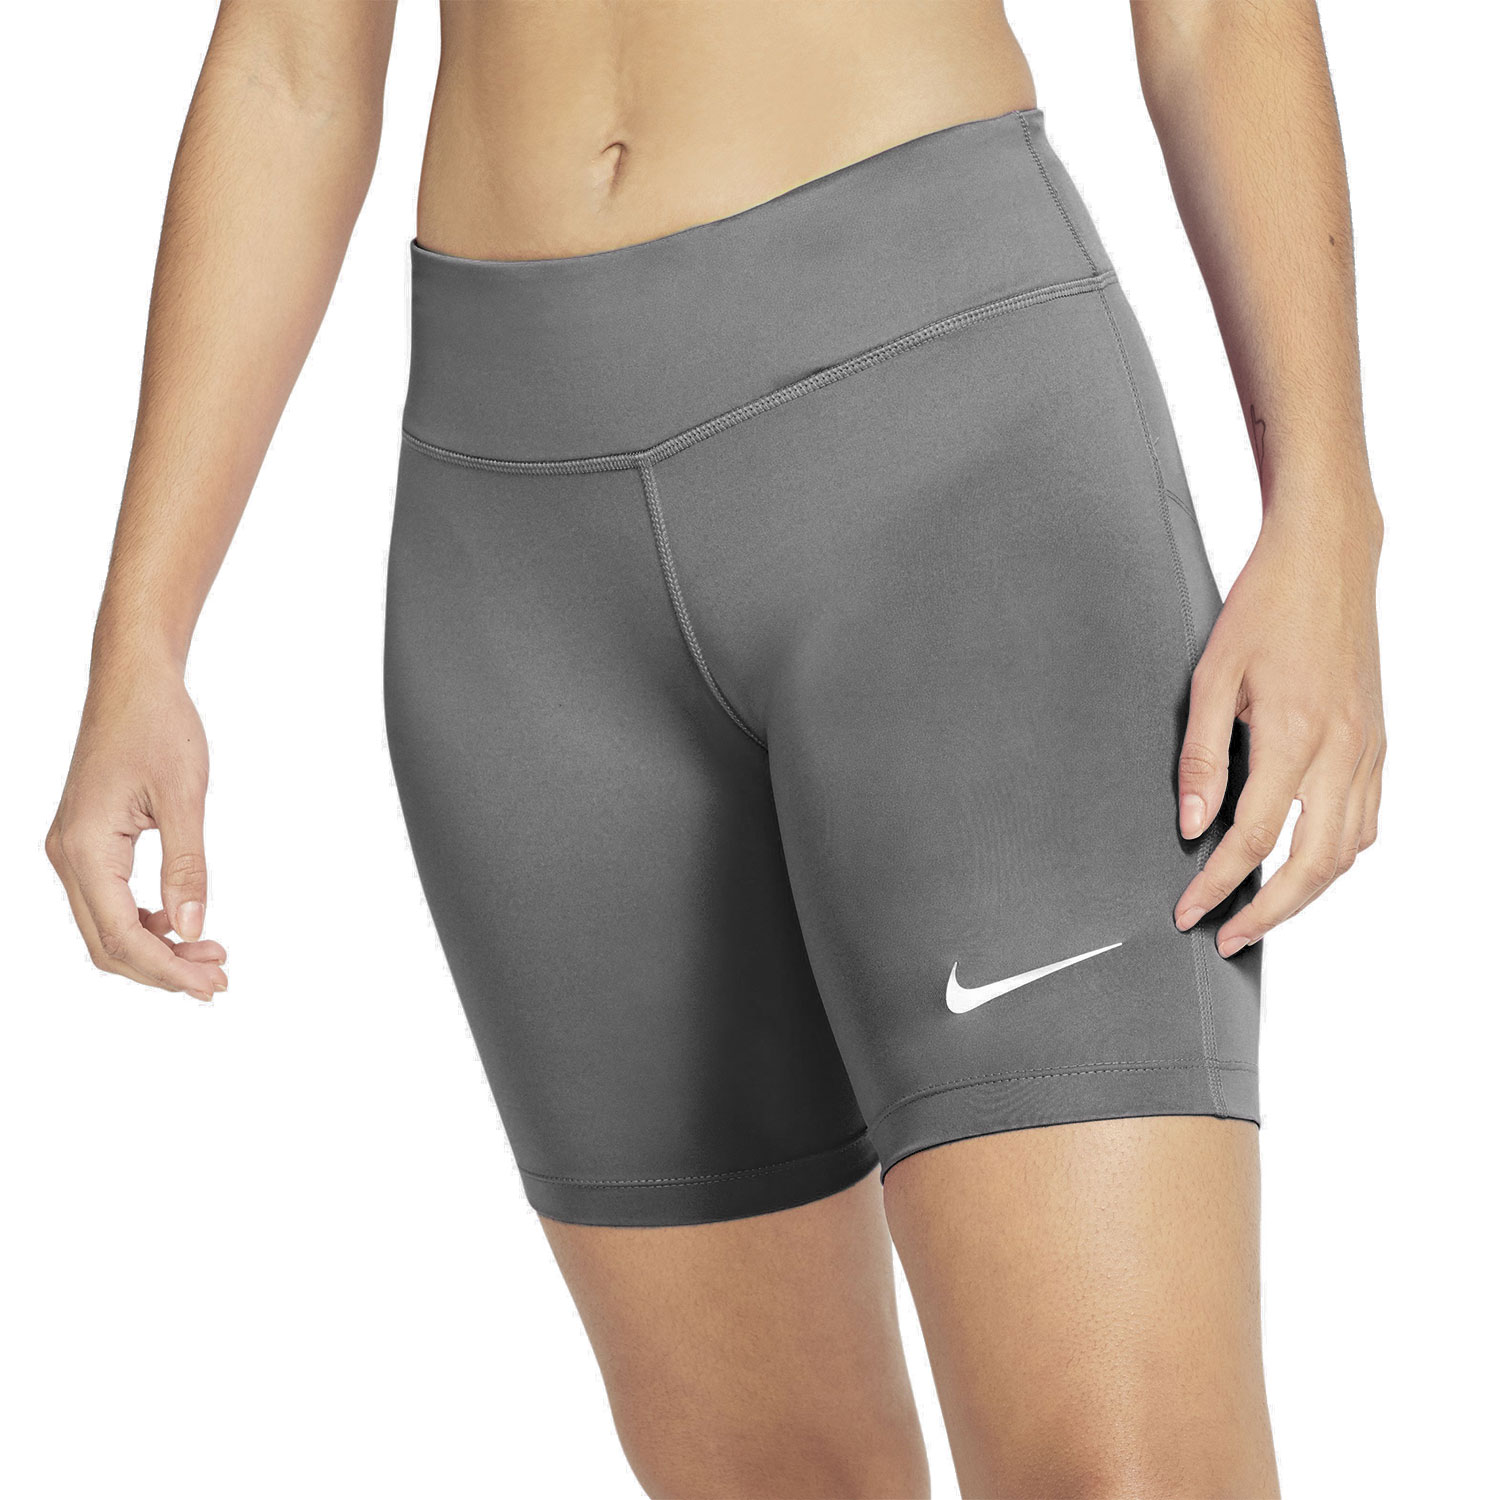 Nike Fast 7in Shorts - Iron Grey/Reflective Silver